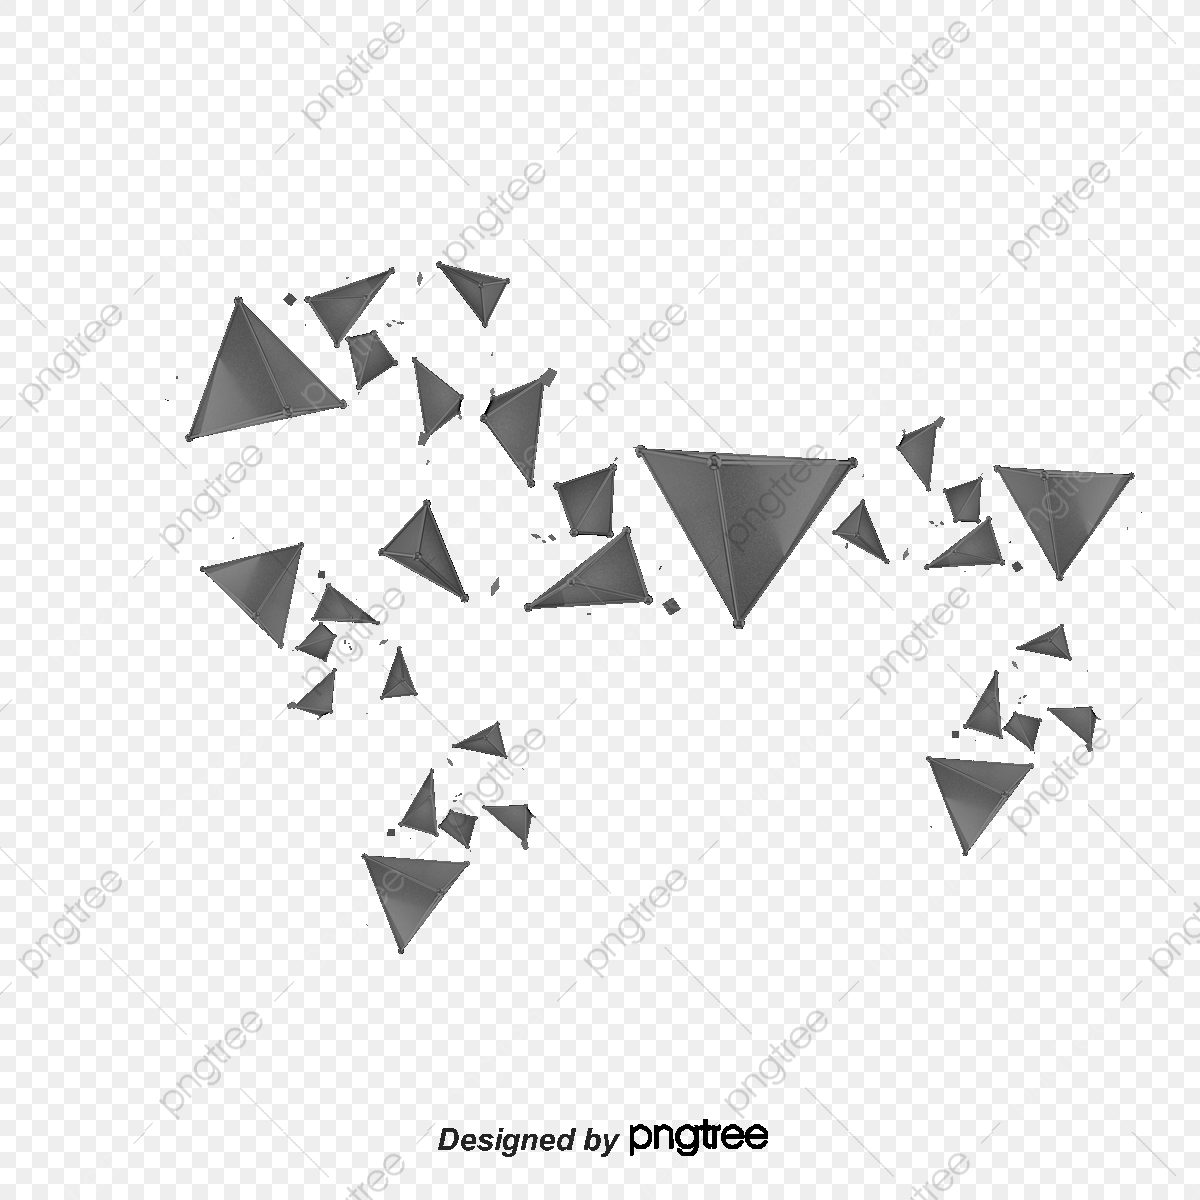 Cool Geometric Black Triangle Pieces, Geometric Vector